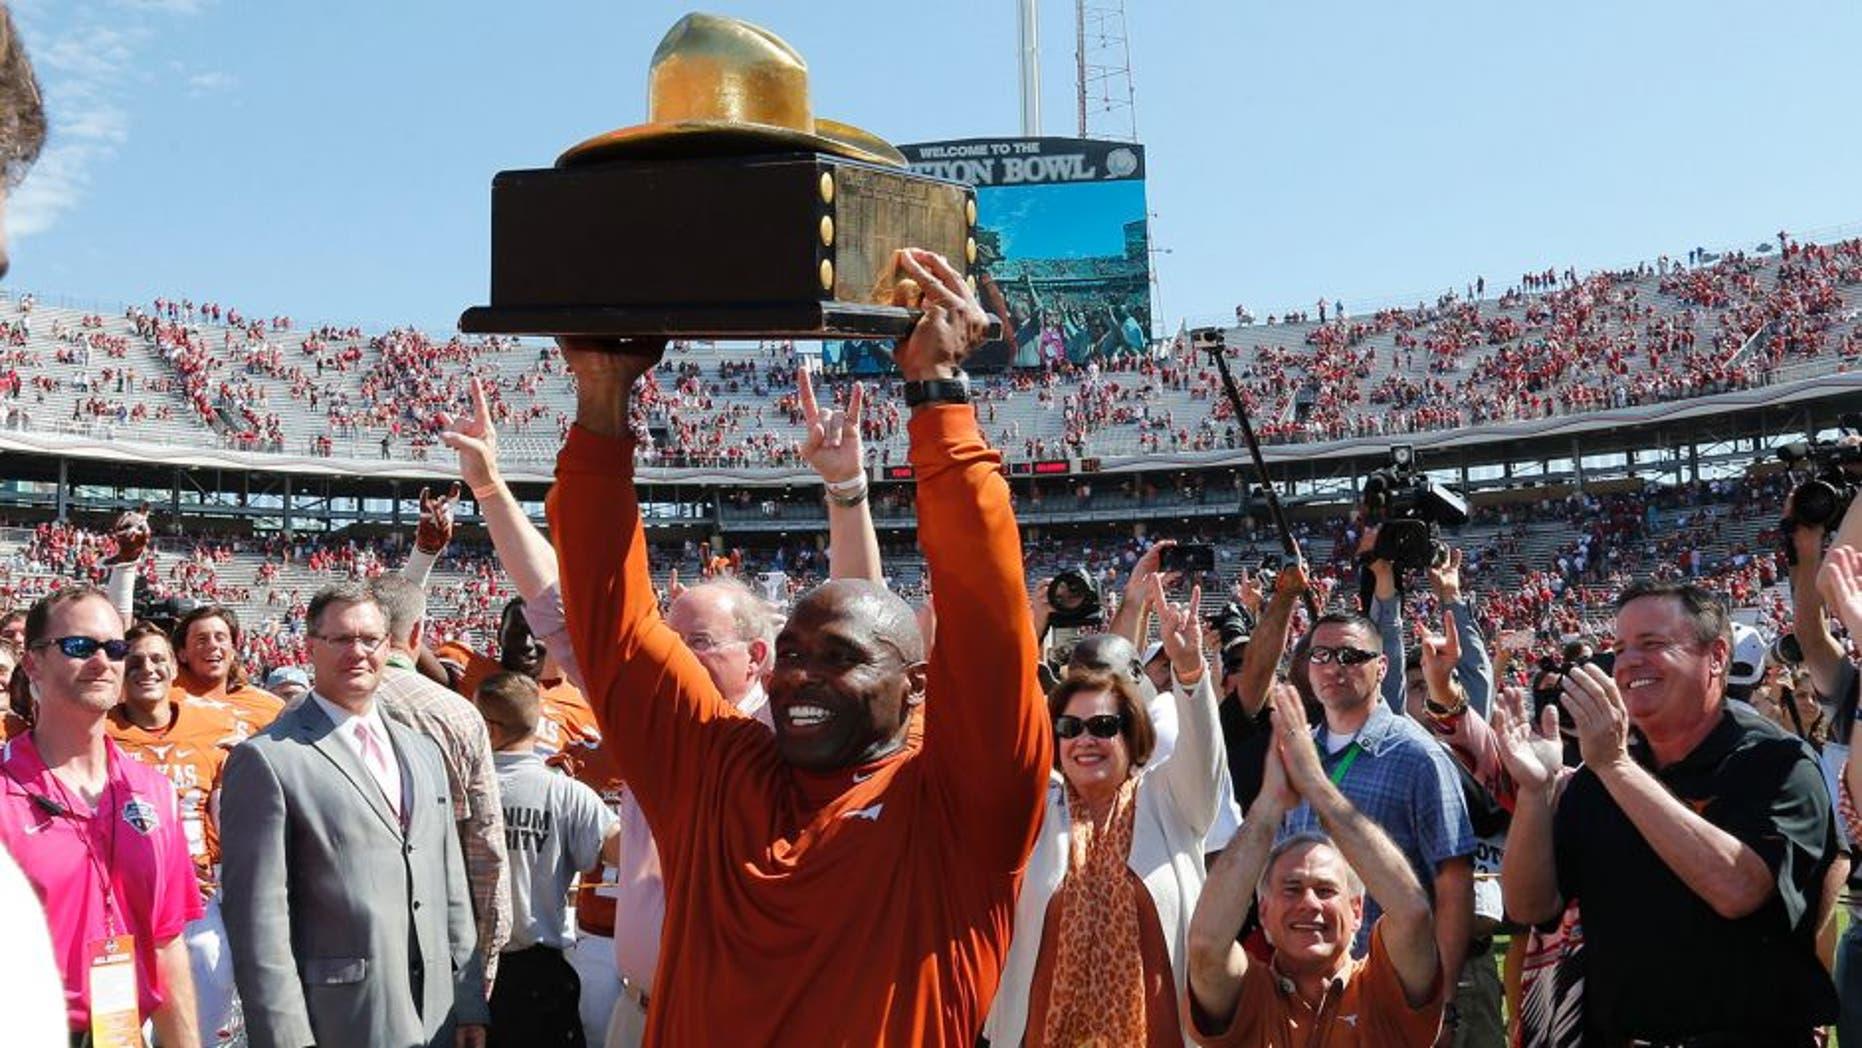 Oct 10, 2015; Dallas, TX, USA; Texas Longhorns head coach Charlie Strong celebrates with the golden hat trophy after a victory against the Oklahoma Sooners during Red River rivalry at Cotton Bowl Stadium. Texas beat Oklahoma 24-17. Mandatory Credit: Matthew Emmons-USA TODAY Sports